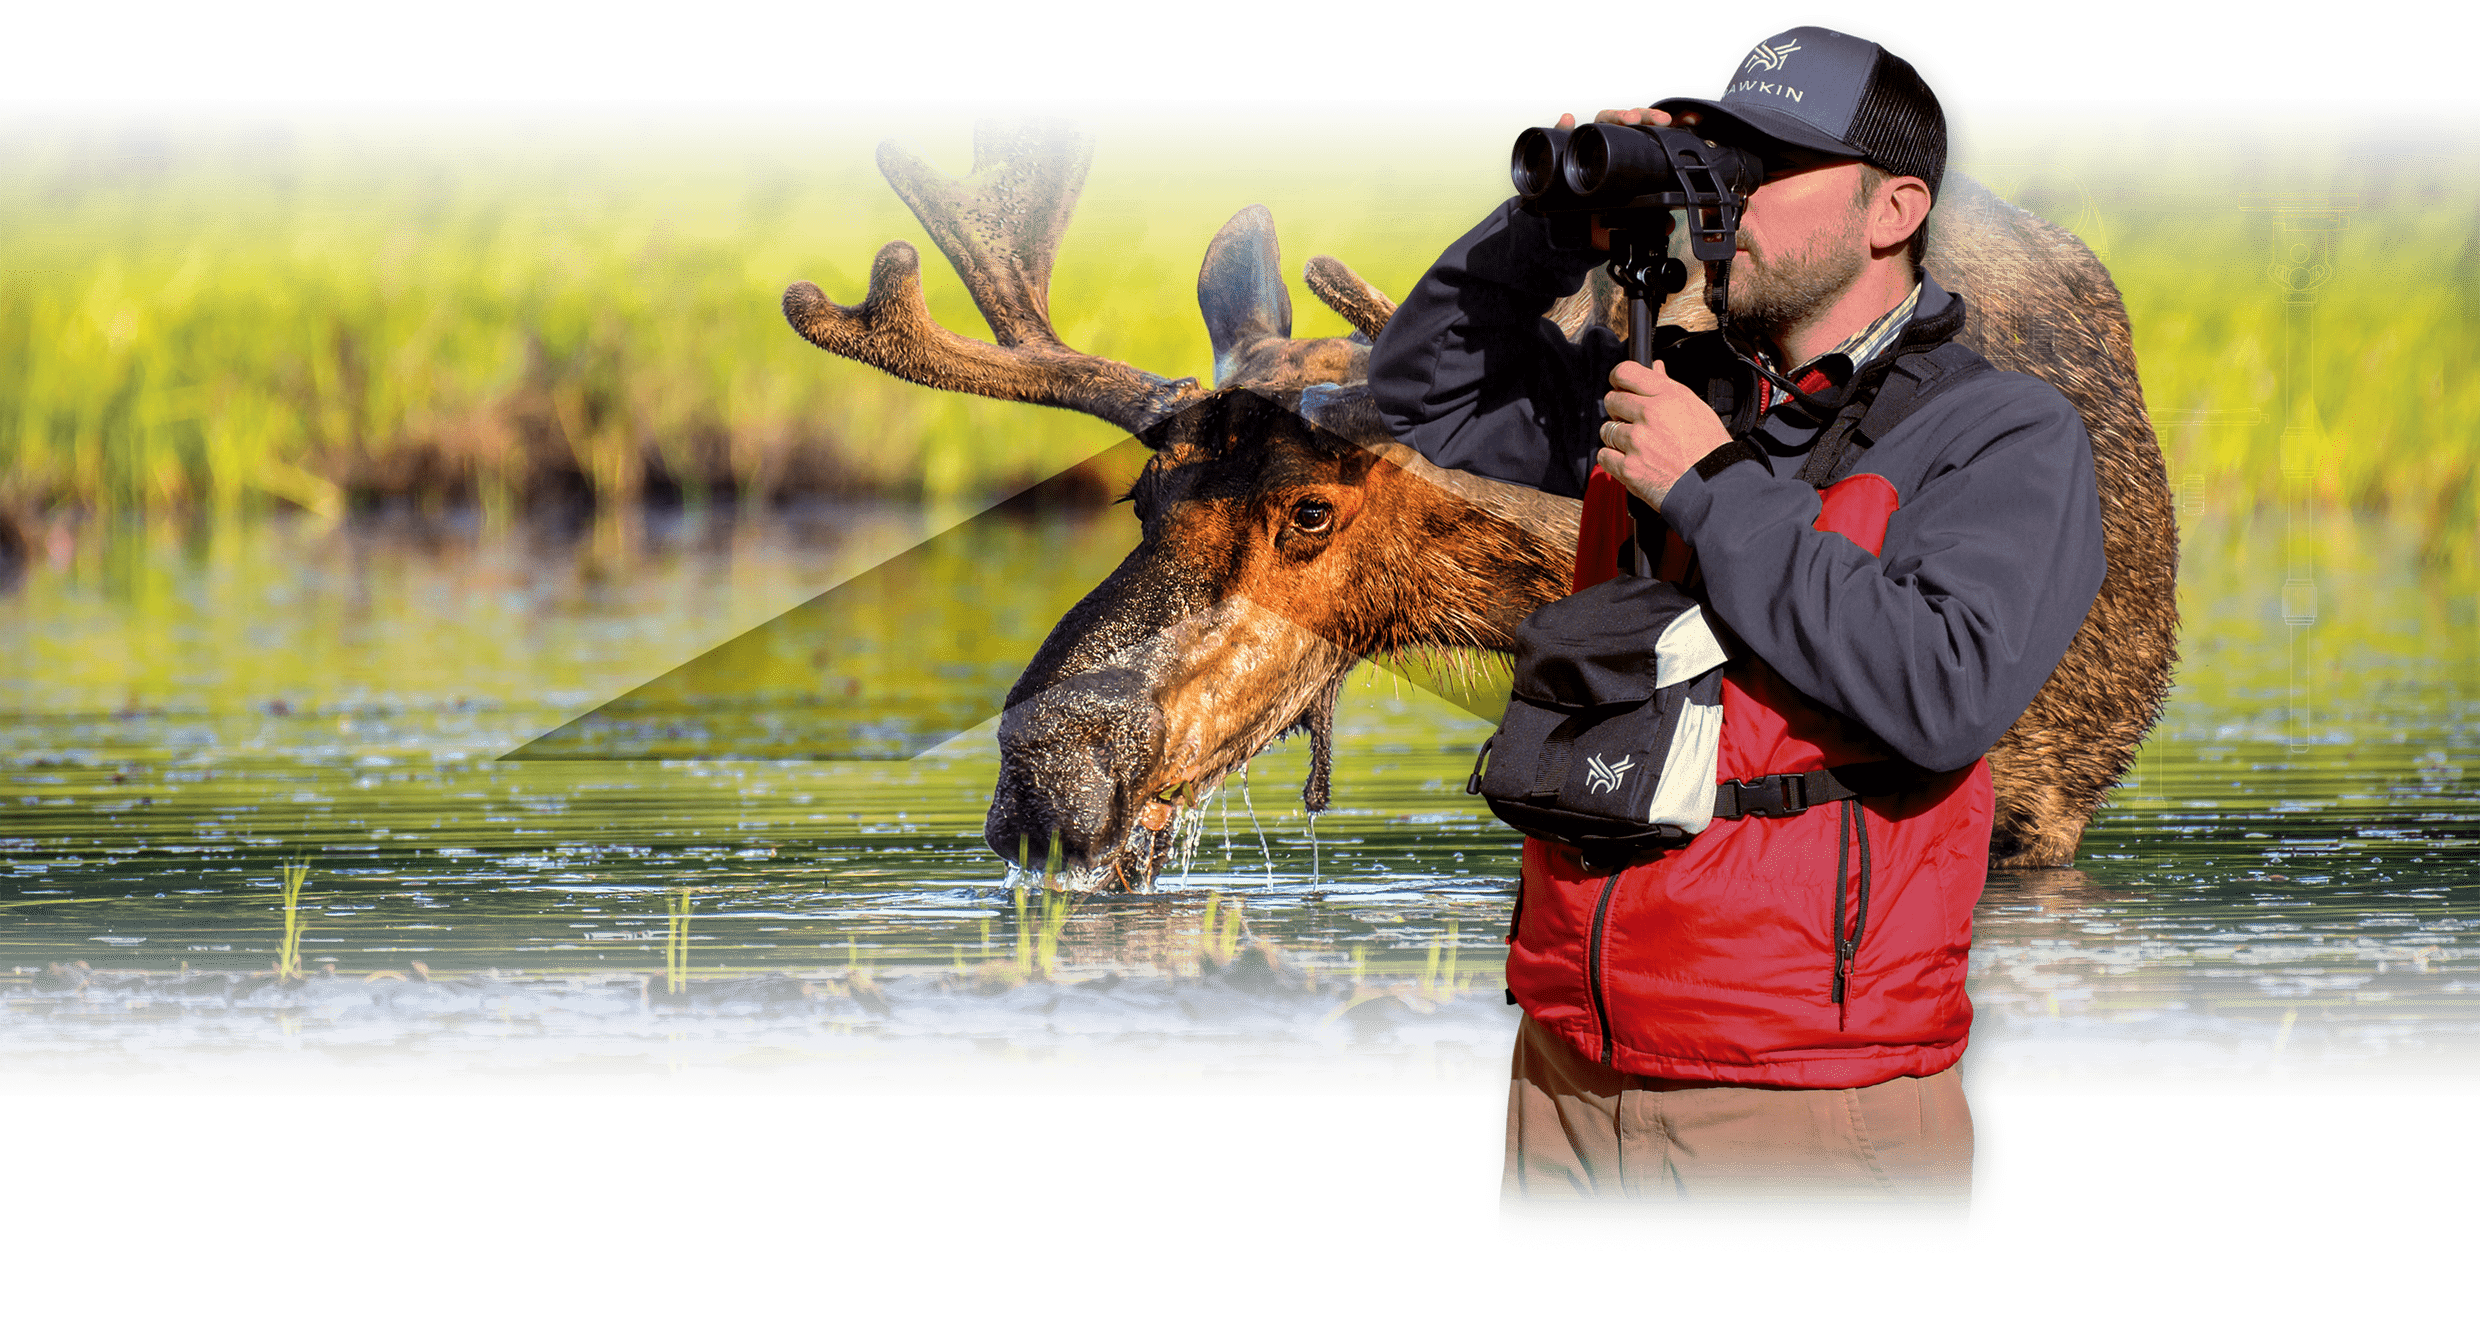 Homepage slide for Hawkin Wildlife - Billings, Montana